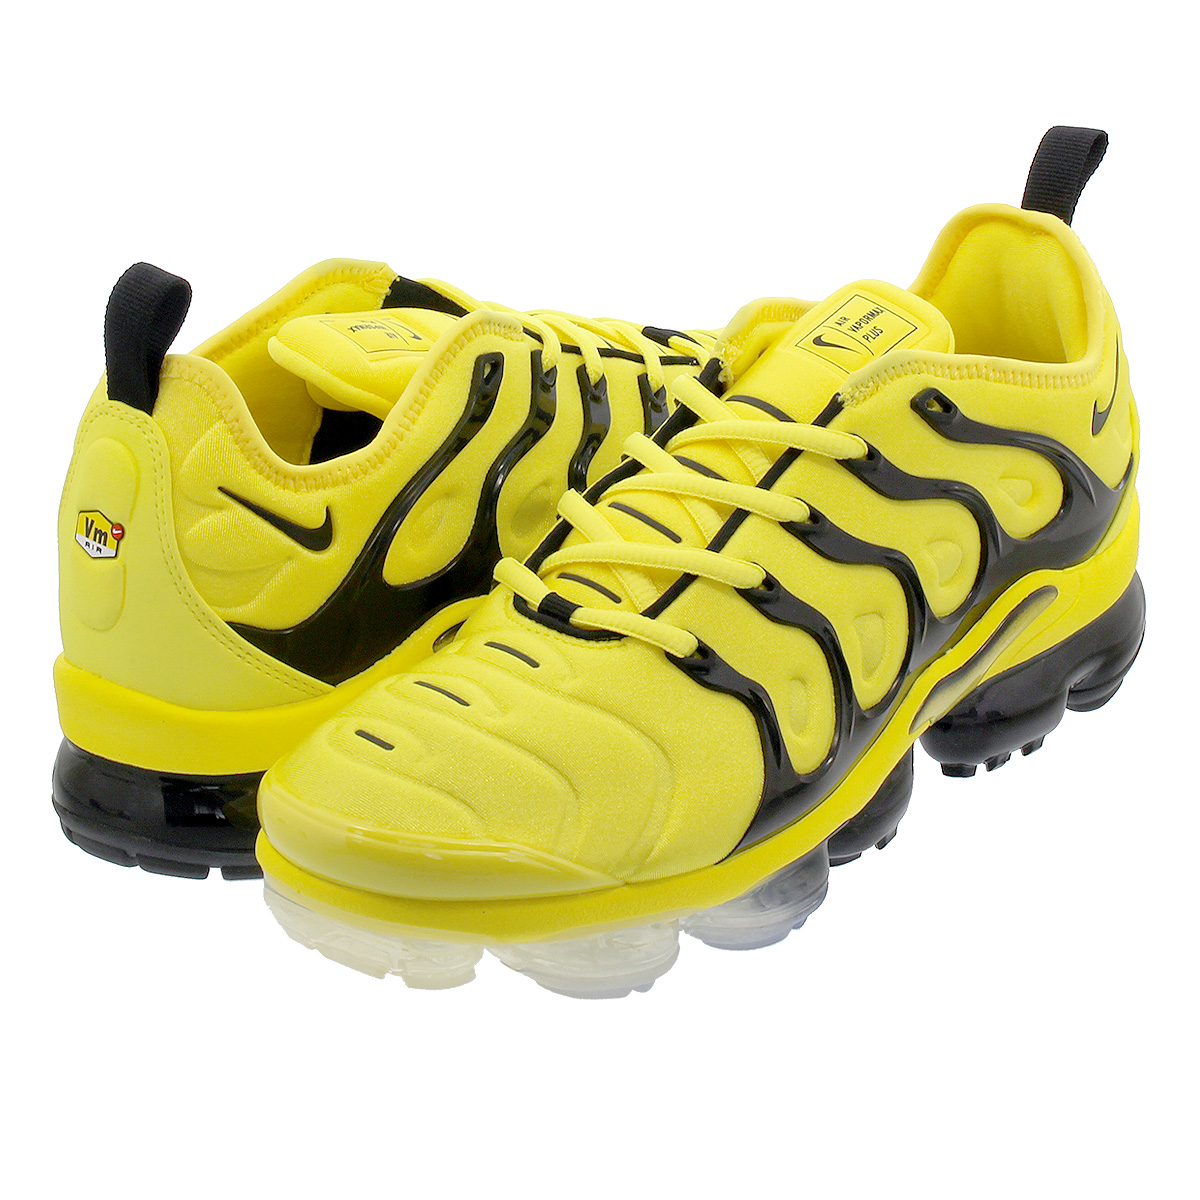 innovative design 45fc1 6e301 NIKE AIR VAPORMAX PLUS Nike vapor max plus YELLOW/BLACK bv6079-700